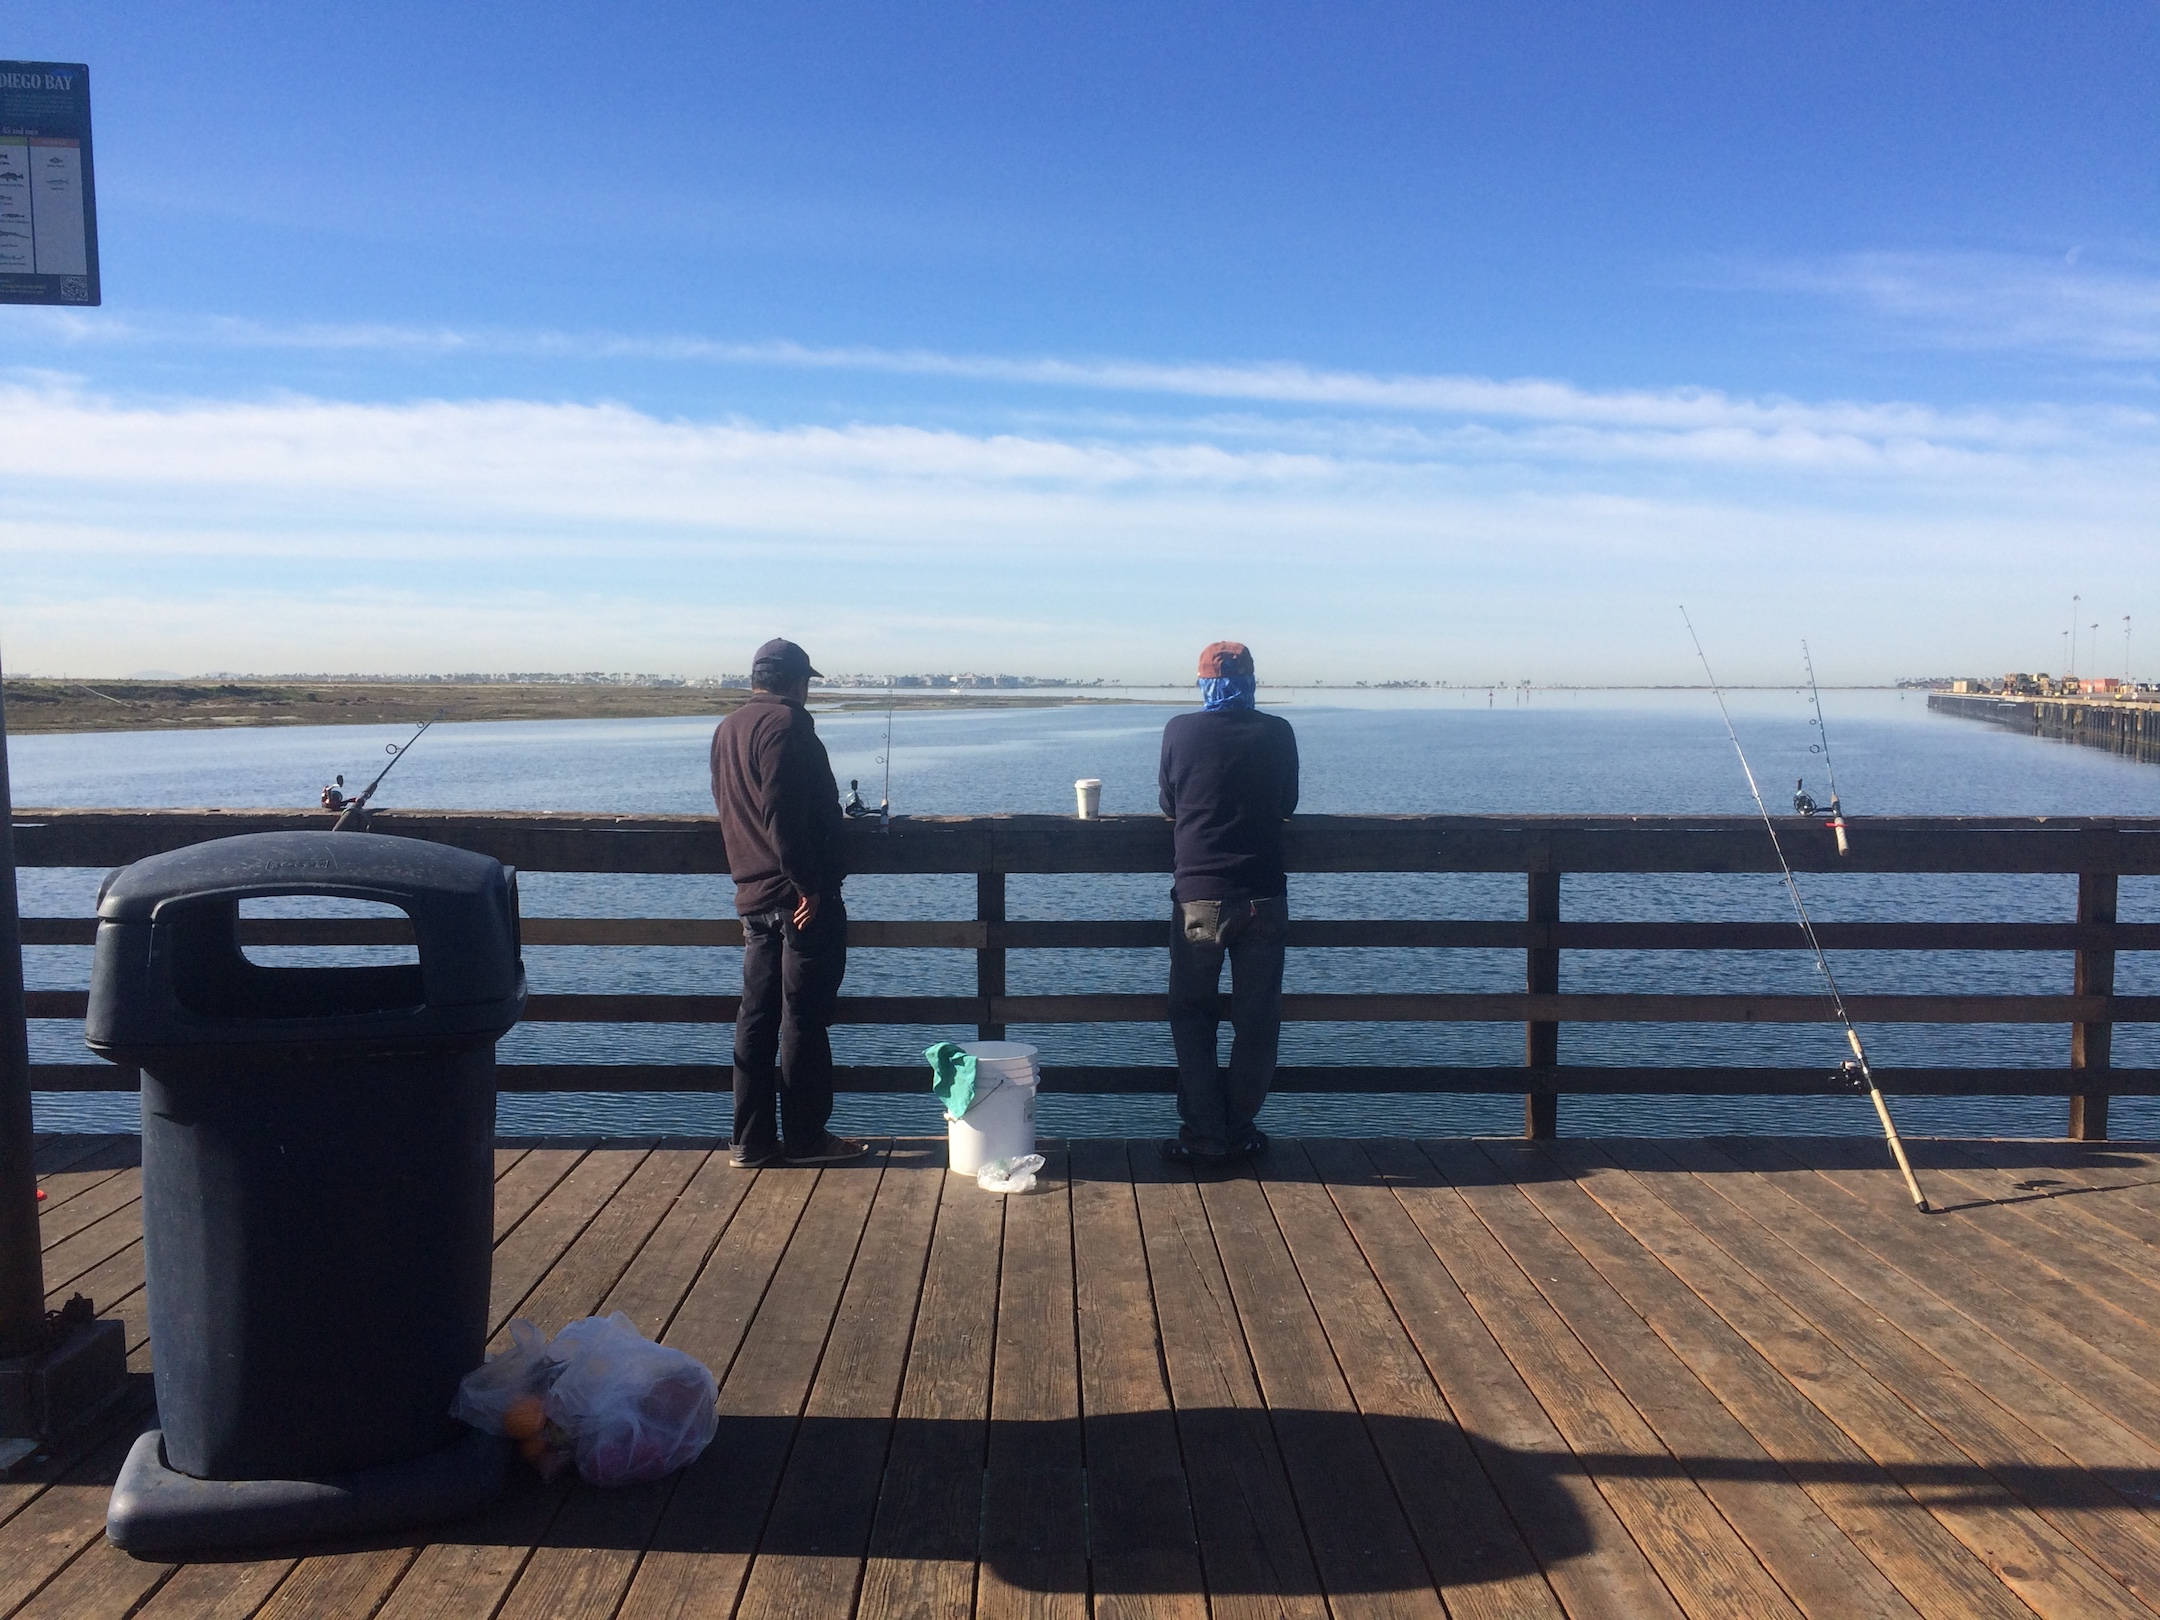 Pepper Park pier on a Saturday morning in January. Photo taken by Nina Venuti.